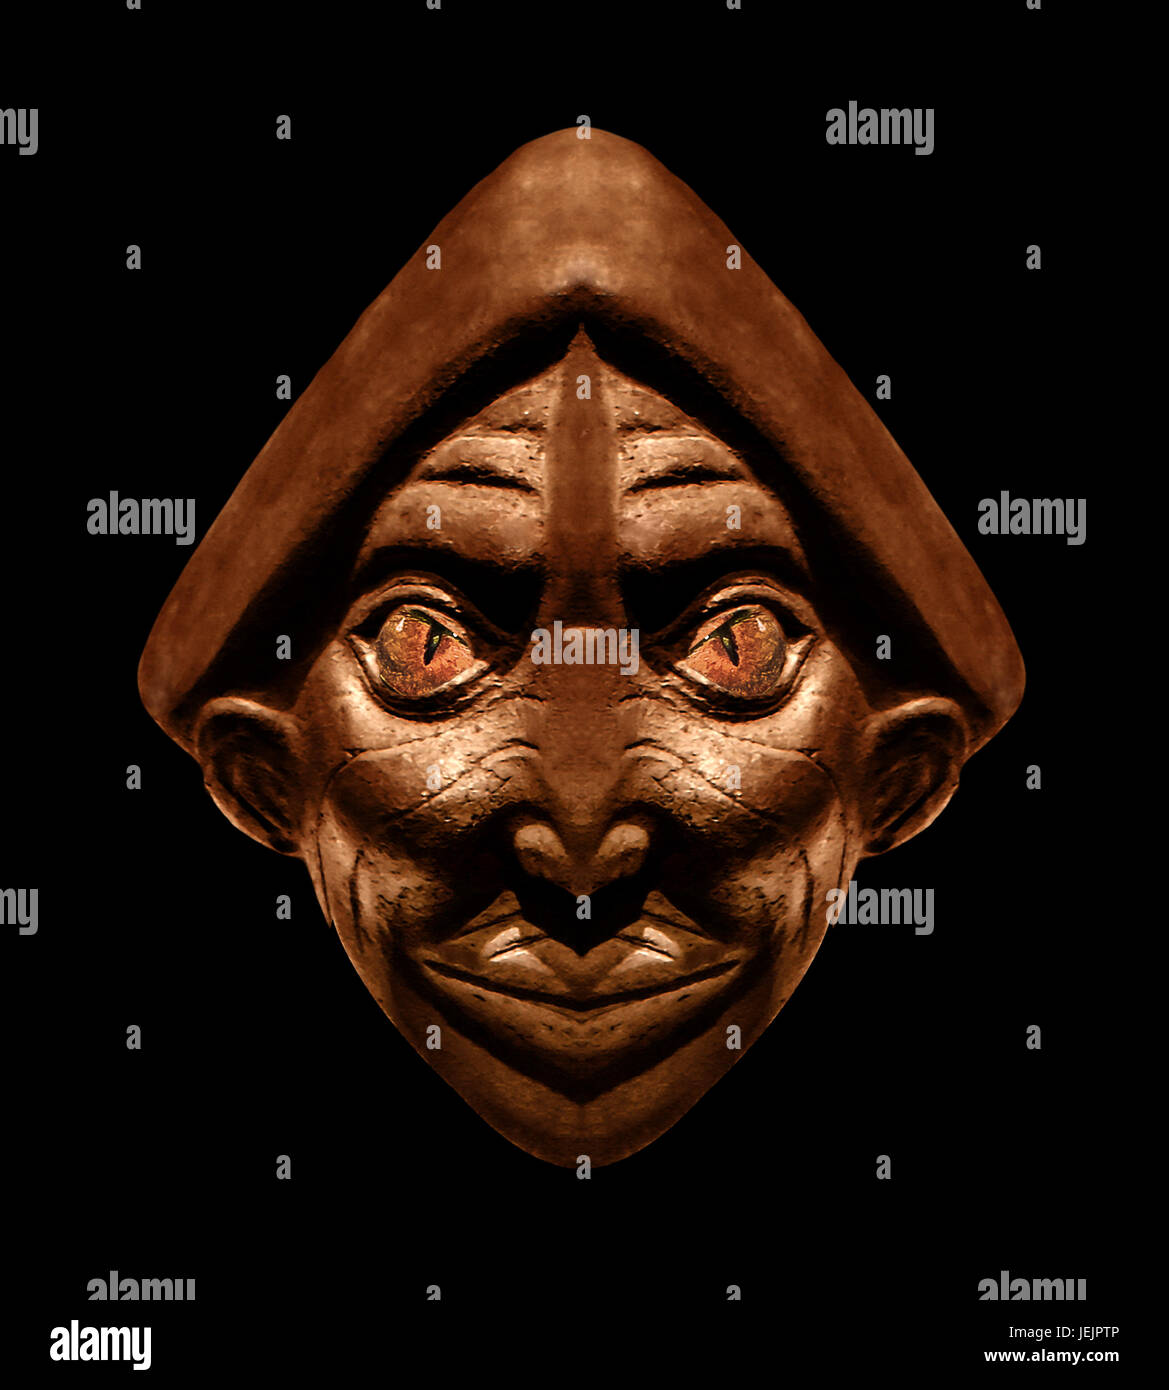 Wood Scuplture Mask in Black Background Stock Photo